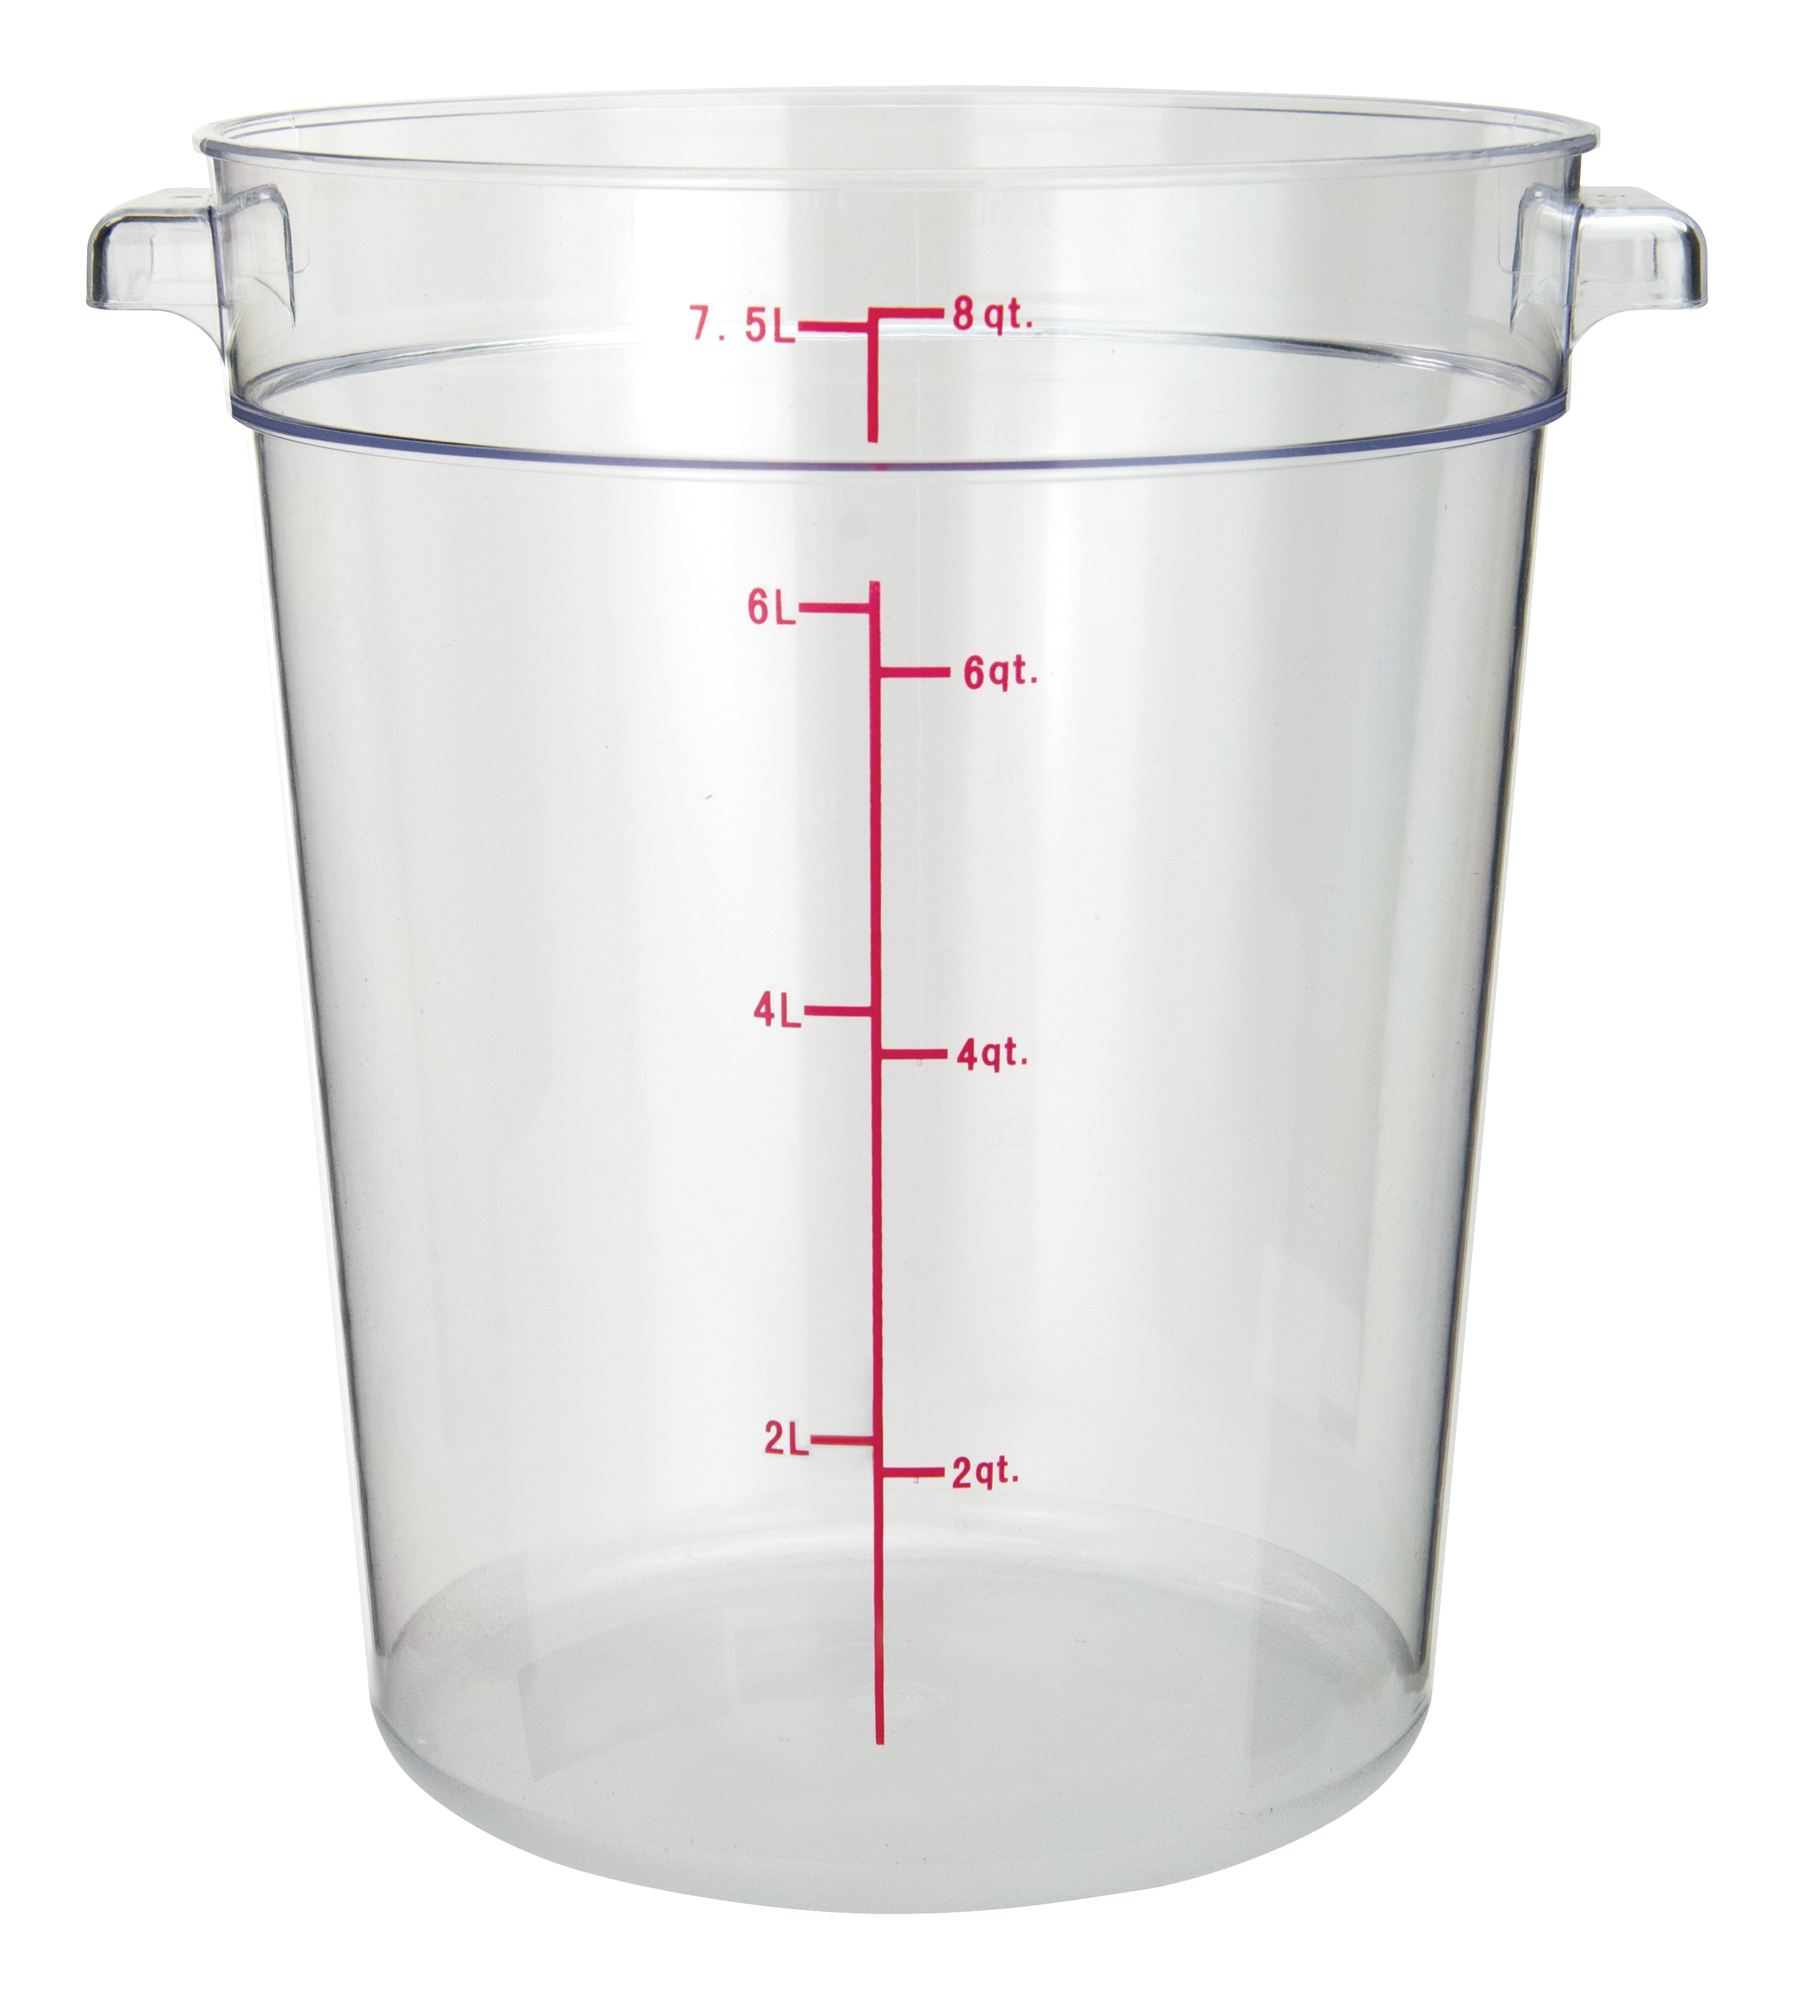 Winco PCRC-8 round food storage containers